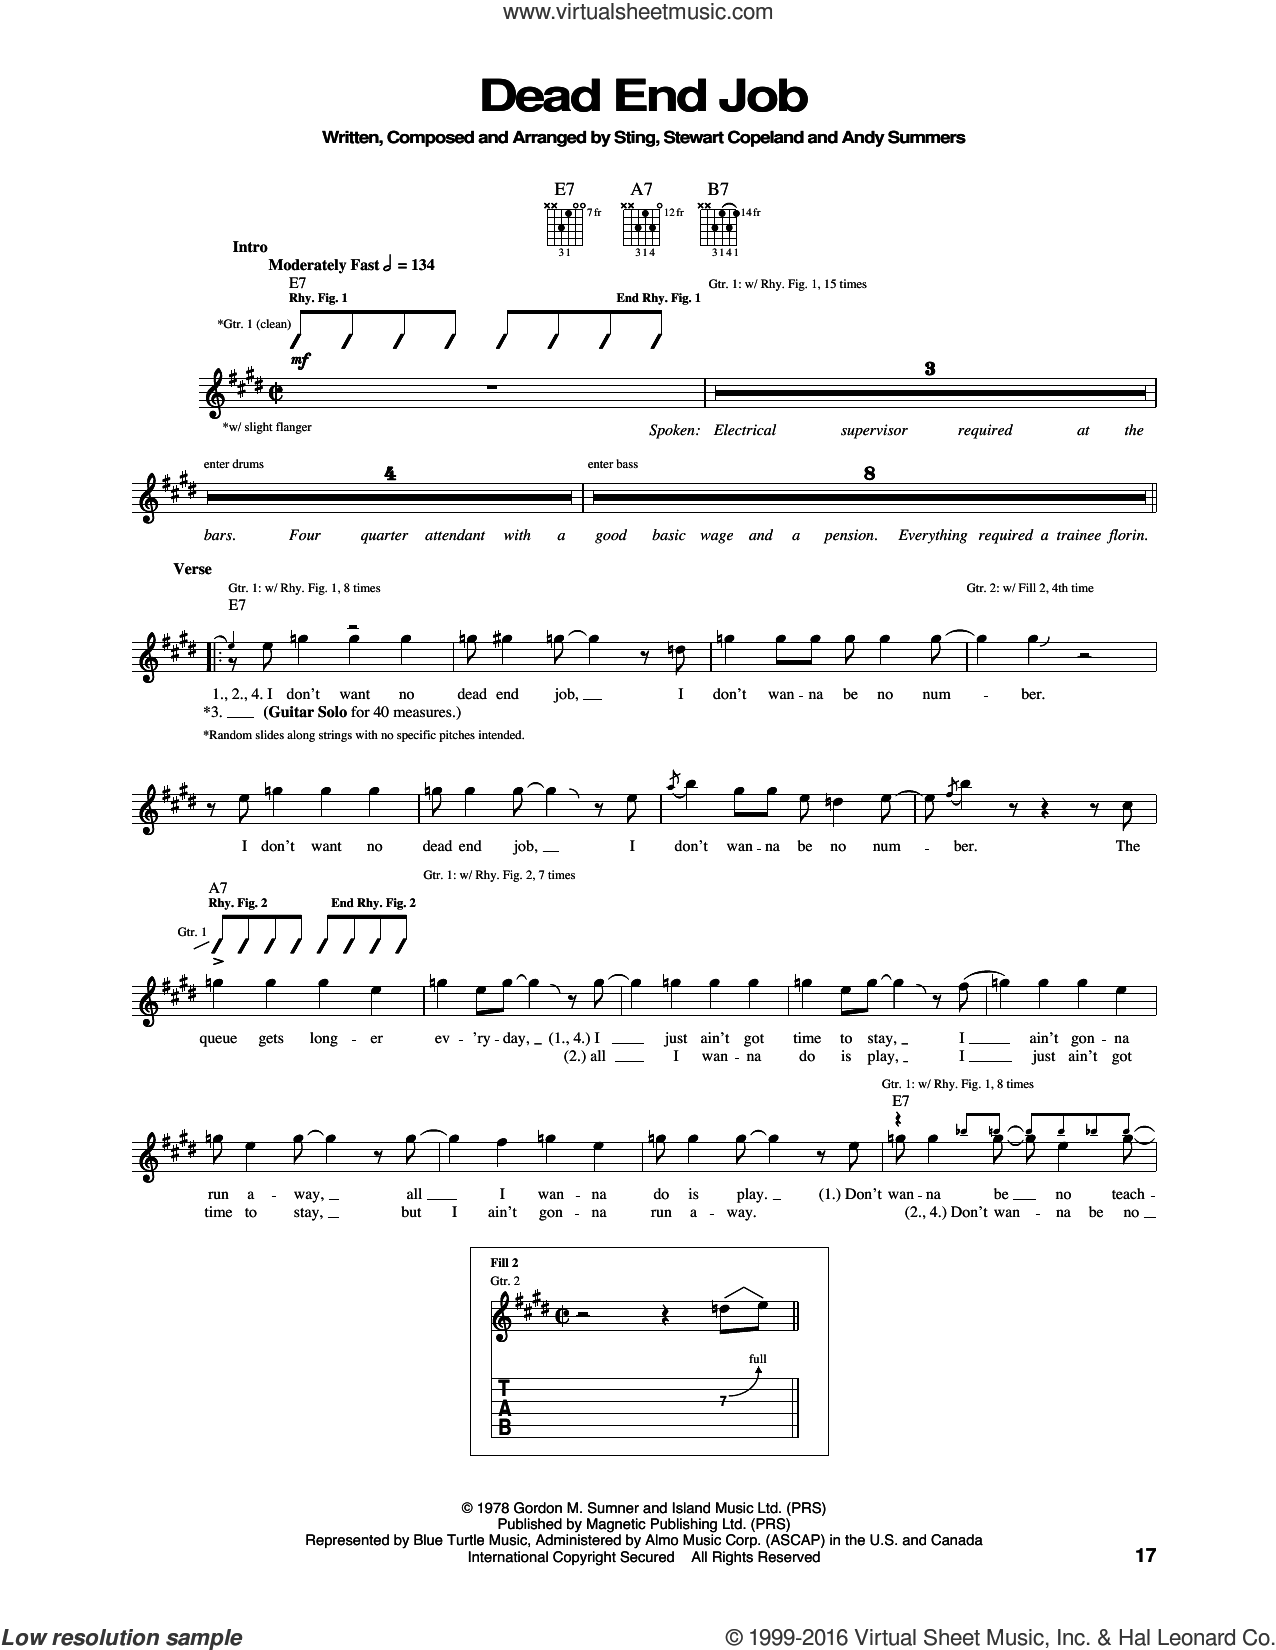 Dead End Job sheet music for guitar (tablature) by Sting, The Police, Andy Summers and Stewart Copeland. Score Image Preview.